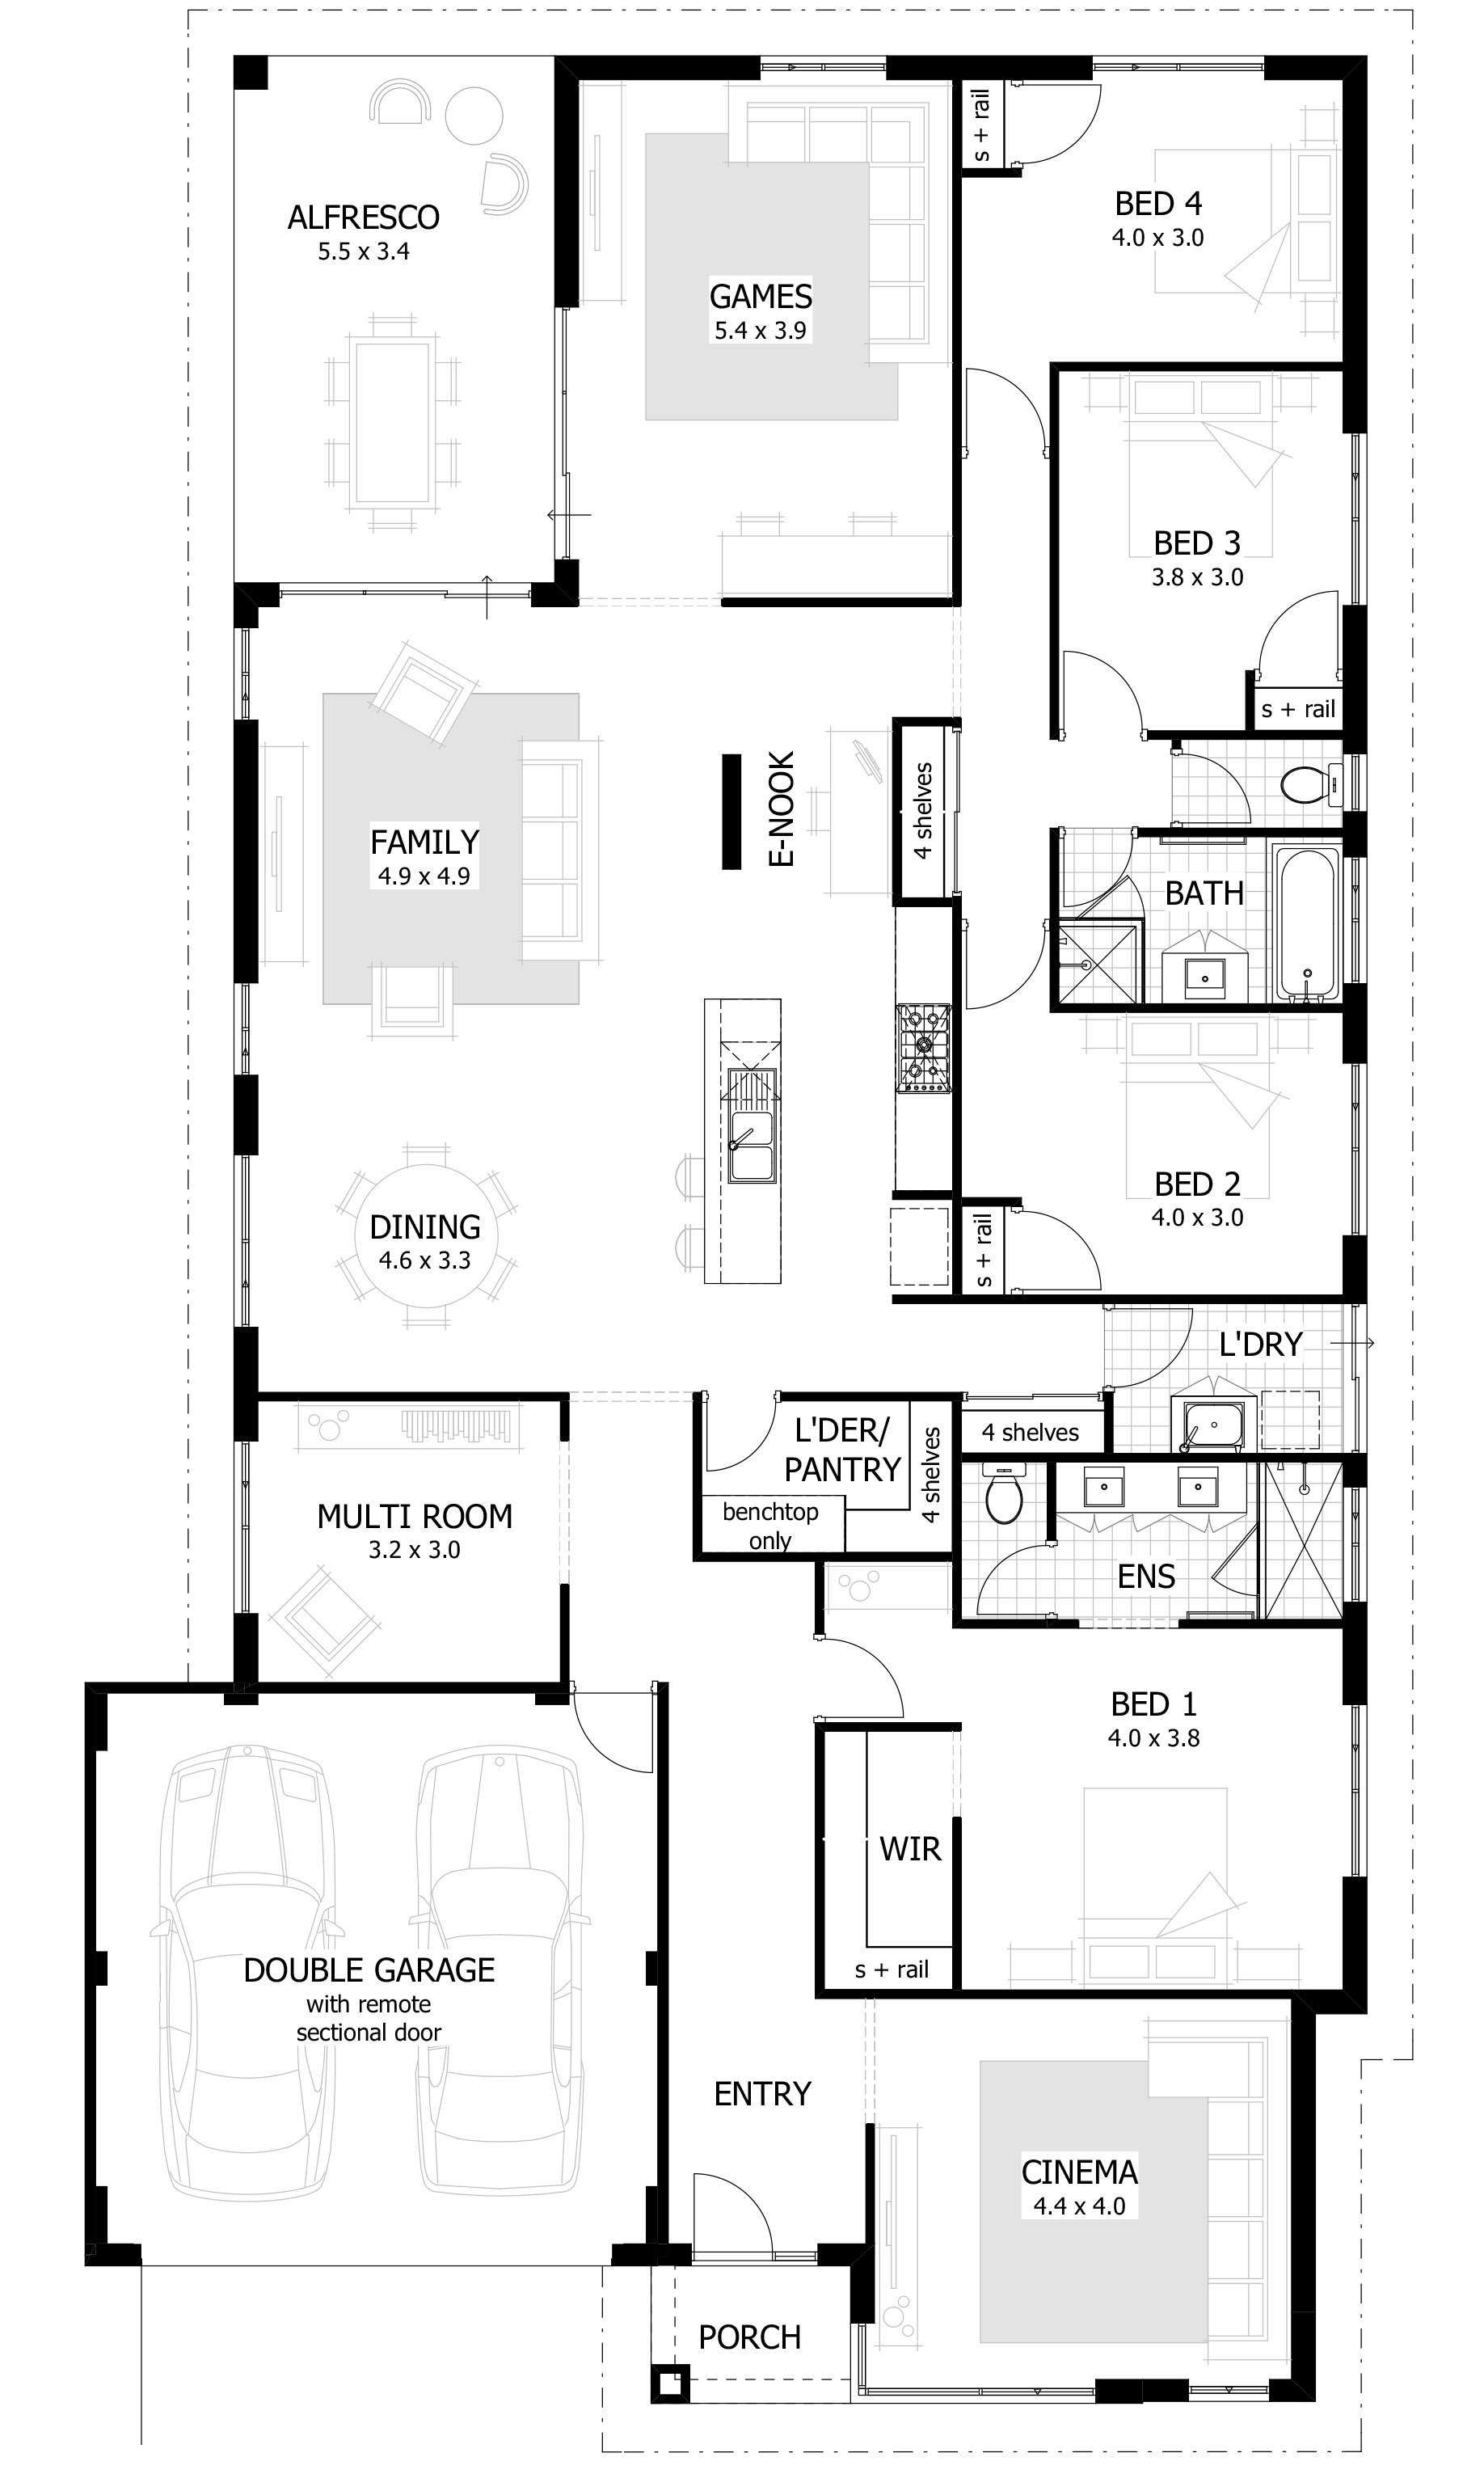 Best 4 Bedroom House Plans Home Designs Celebration Homes With Pictures Original 1024 x 768